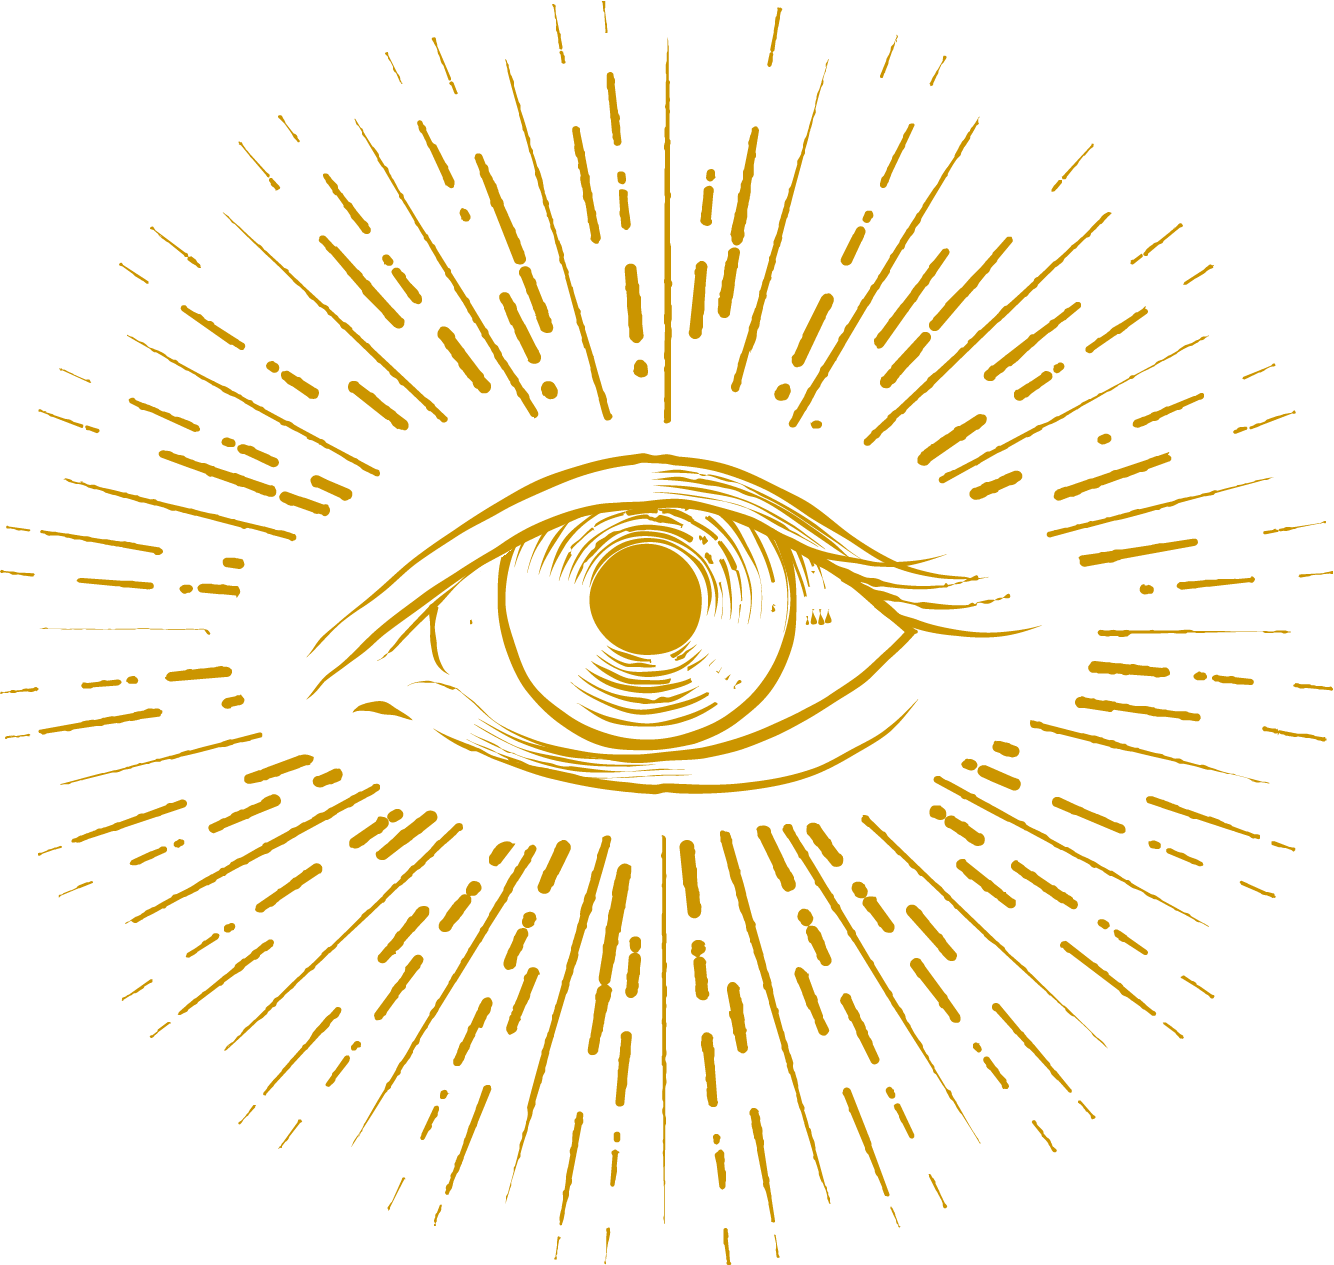 All seeing eye image.